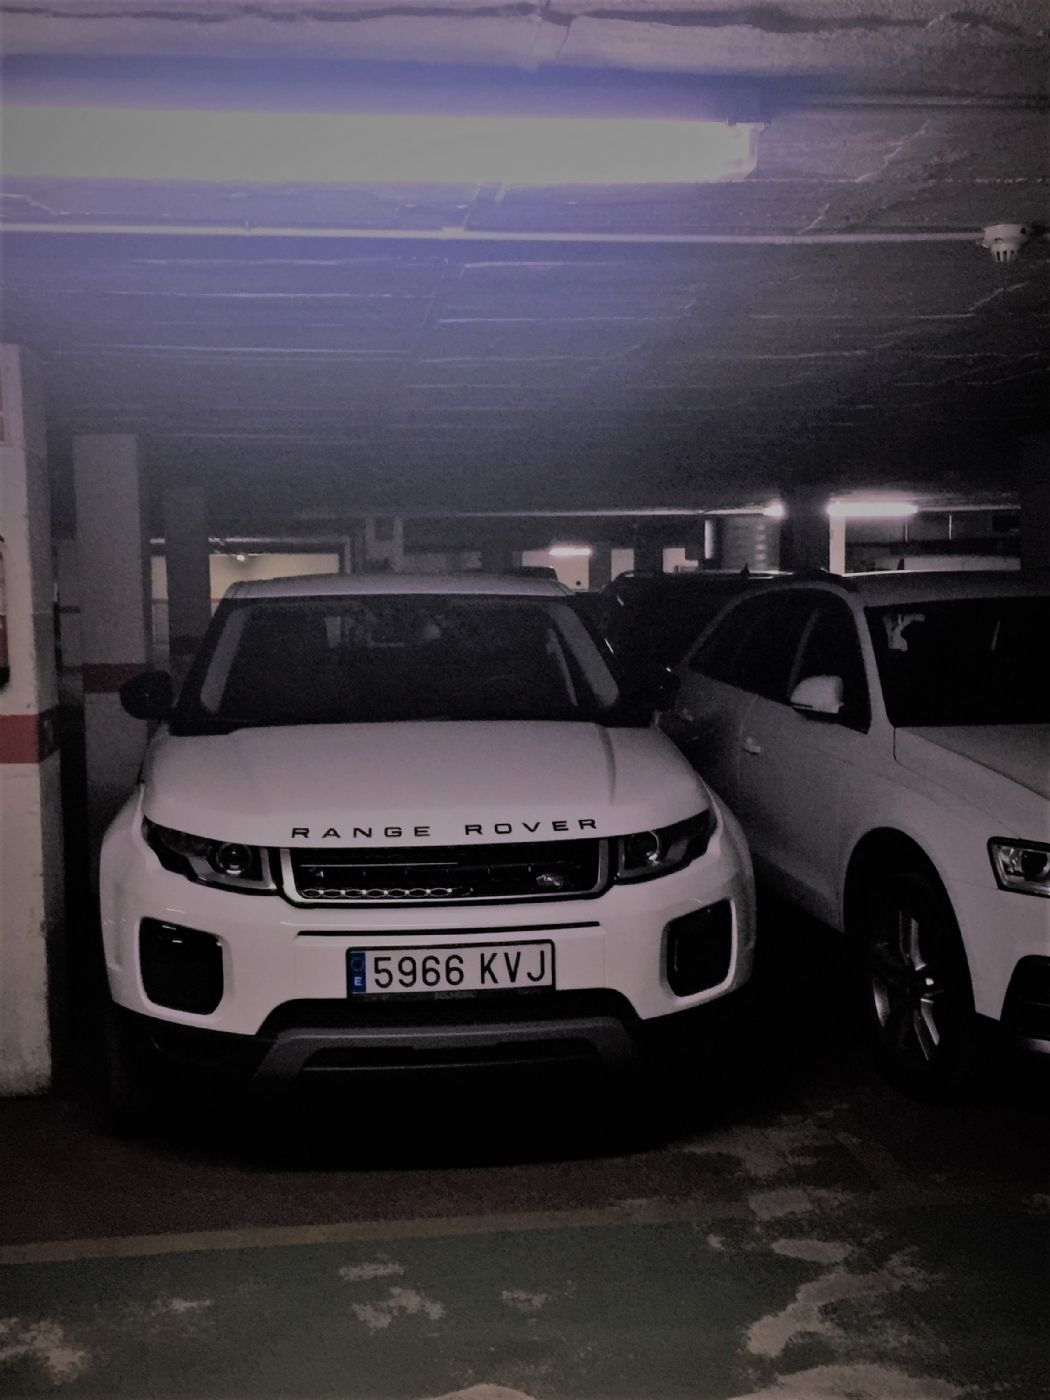 Autoparkplatz in Creu gran, 51. Alquiler parking